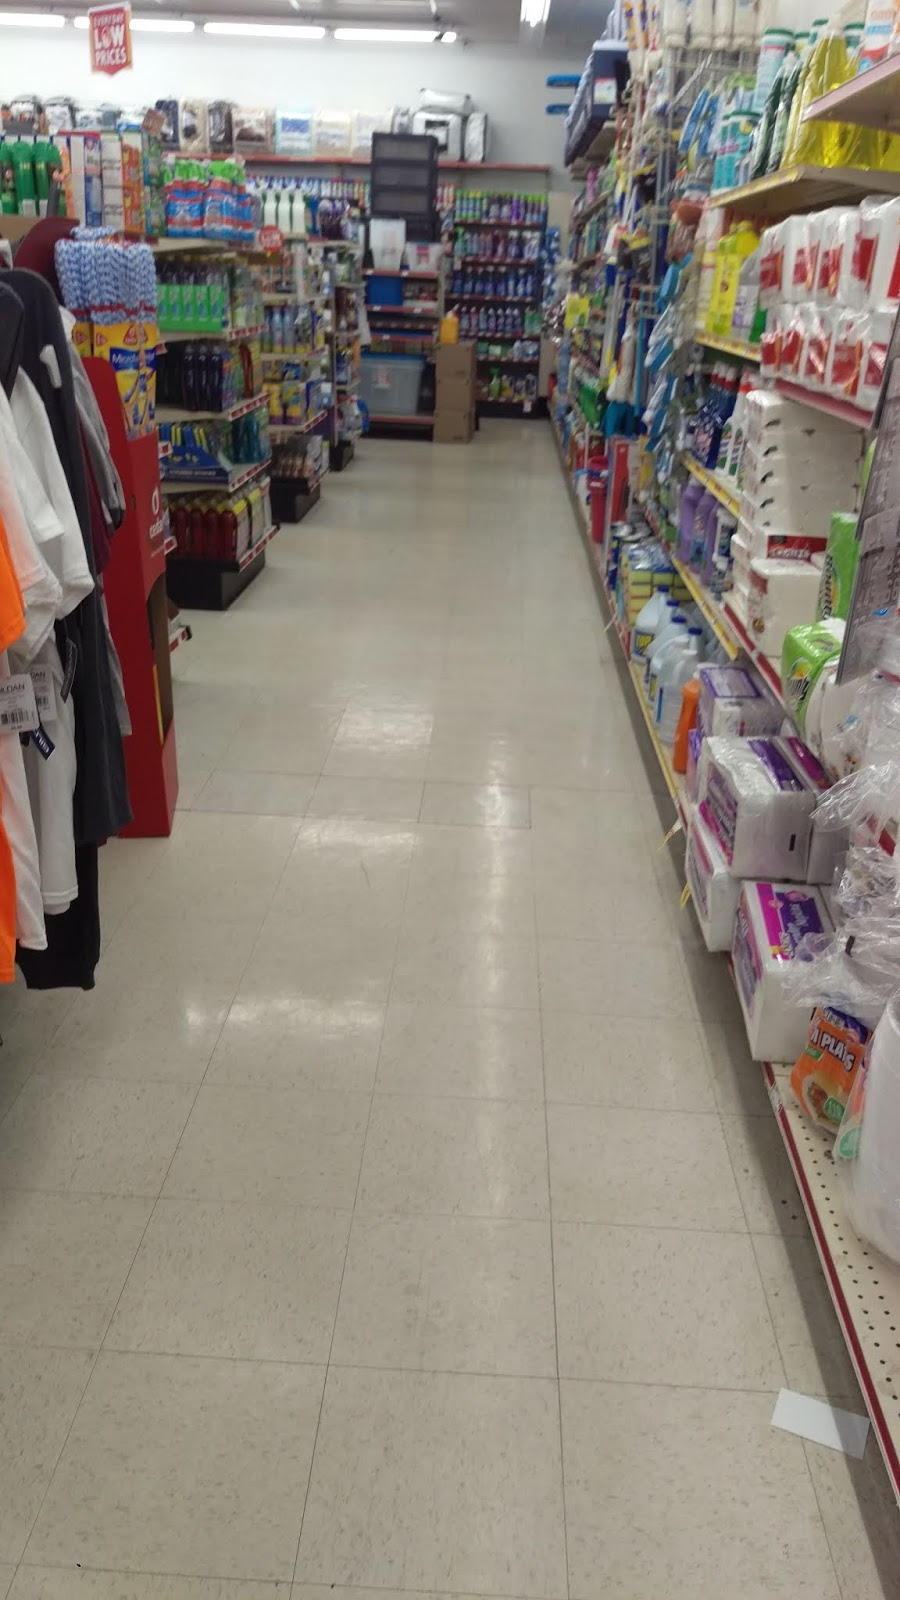 Family Dollar - clothing store  | Photo 6 of 6 | Address: 9 Commons Dr, Cooperstown, NY 13326, USA | Phone: (607) 547-5531